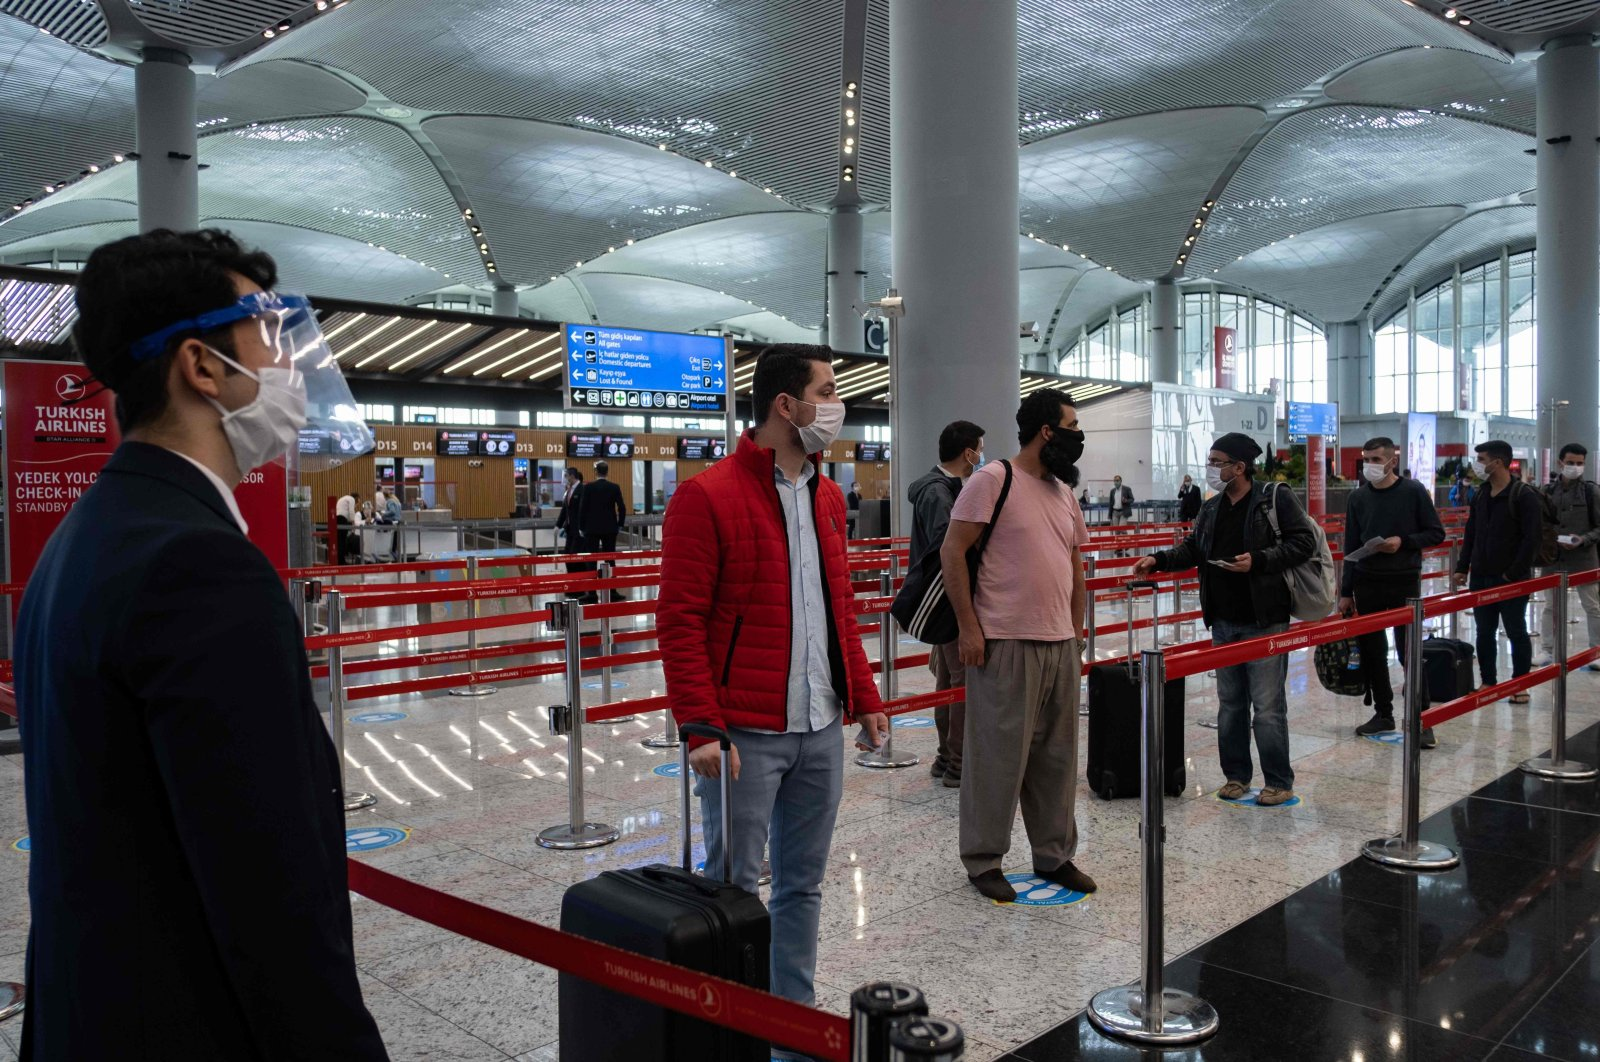 Passengers wearing protective face masks wait to be checked in at Istanbul Airport on the first day of the resumption of domestic flights after a pause due to the pandemic, in Istanbul, Turkey, June 1, 2020. (AFP Photo)